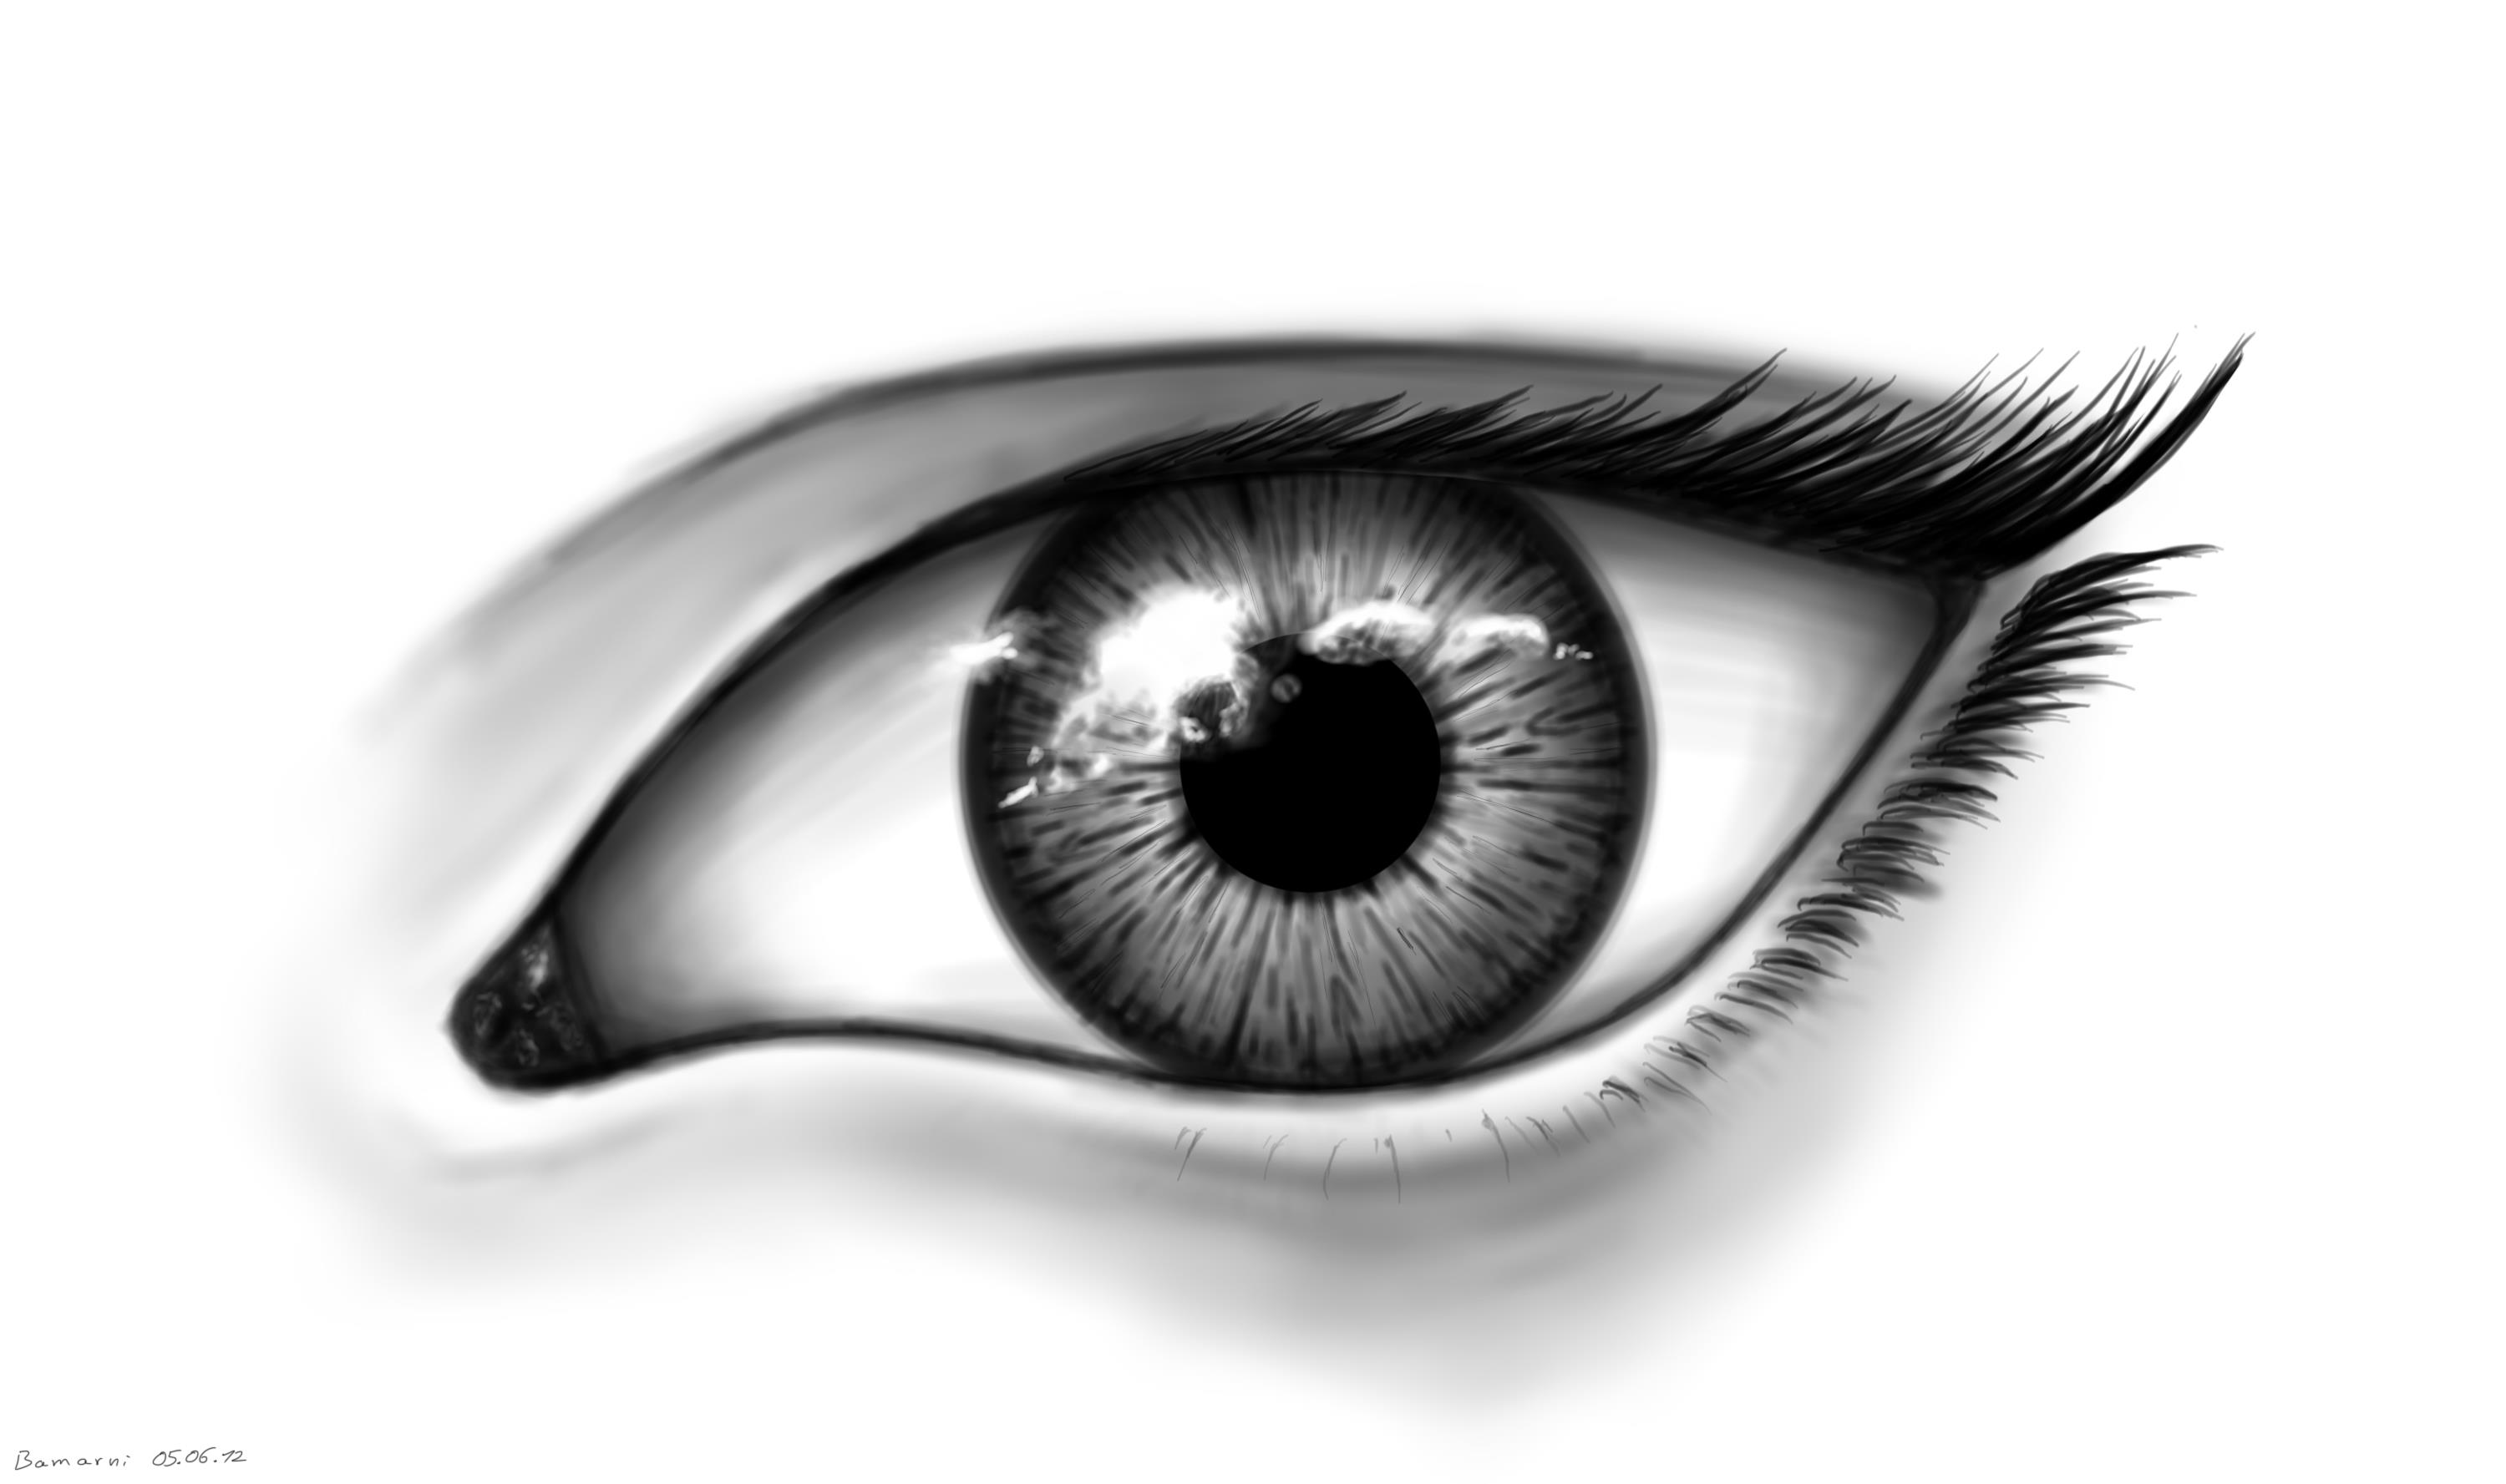 ... Black And White Eye By Loccorico On Deviantart #EbsqnJ - Clipart Kid